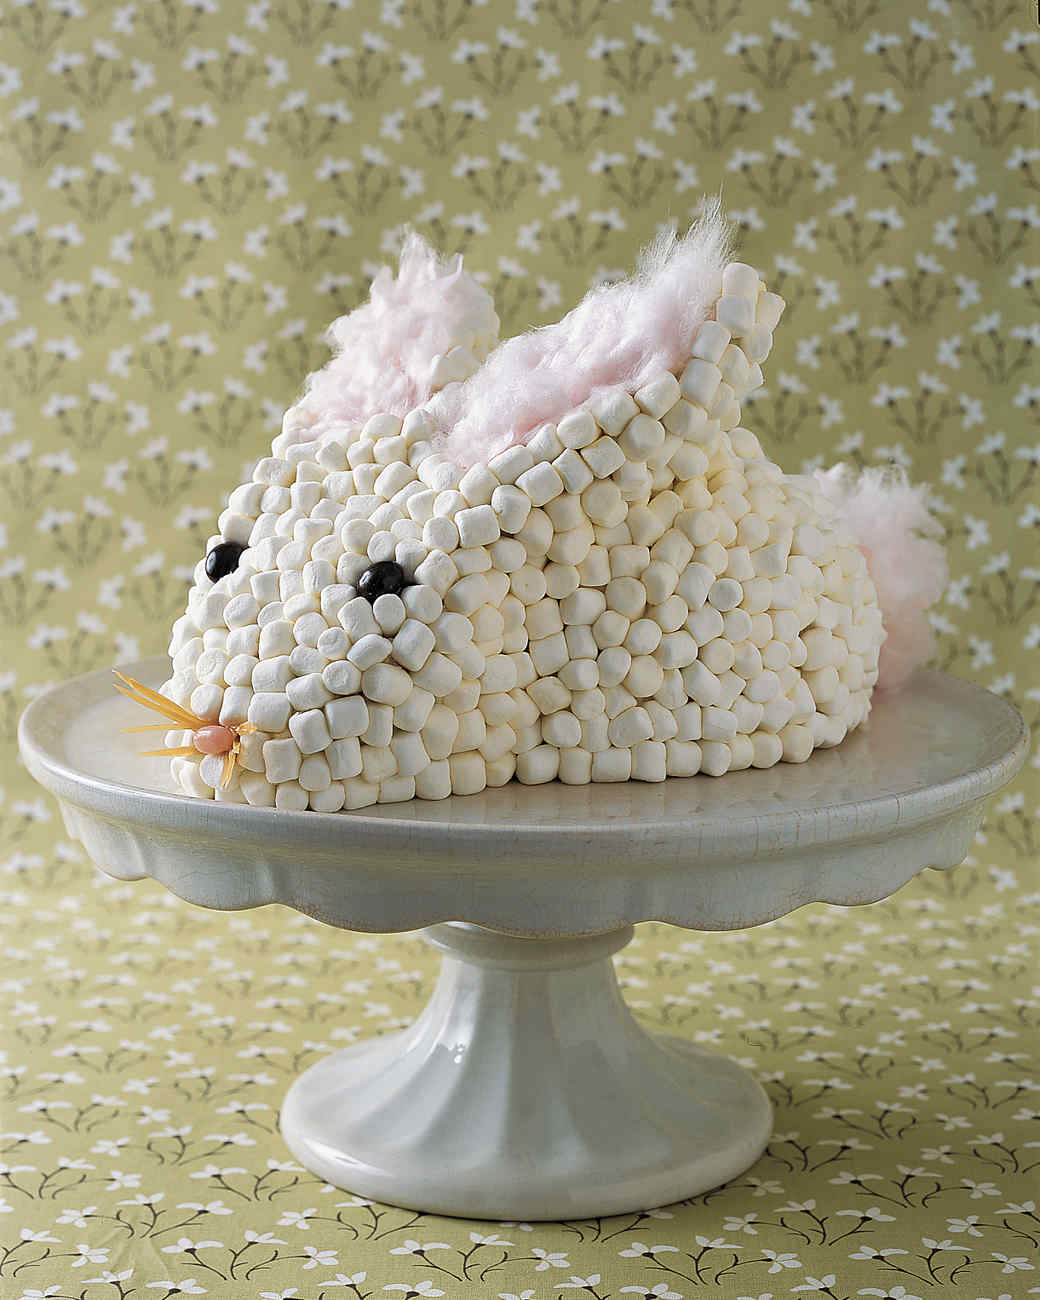 Amazing Animal Cakes That Are Super-Cute (Check Out the Bunny Cake!)